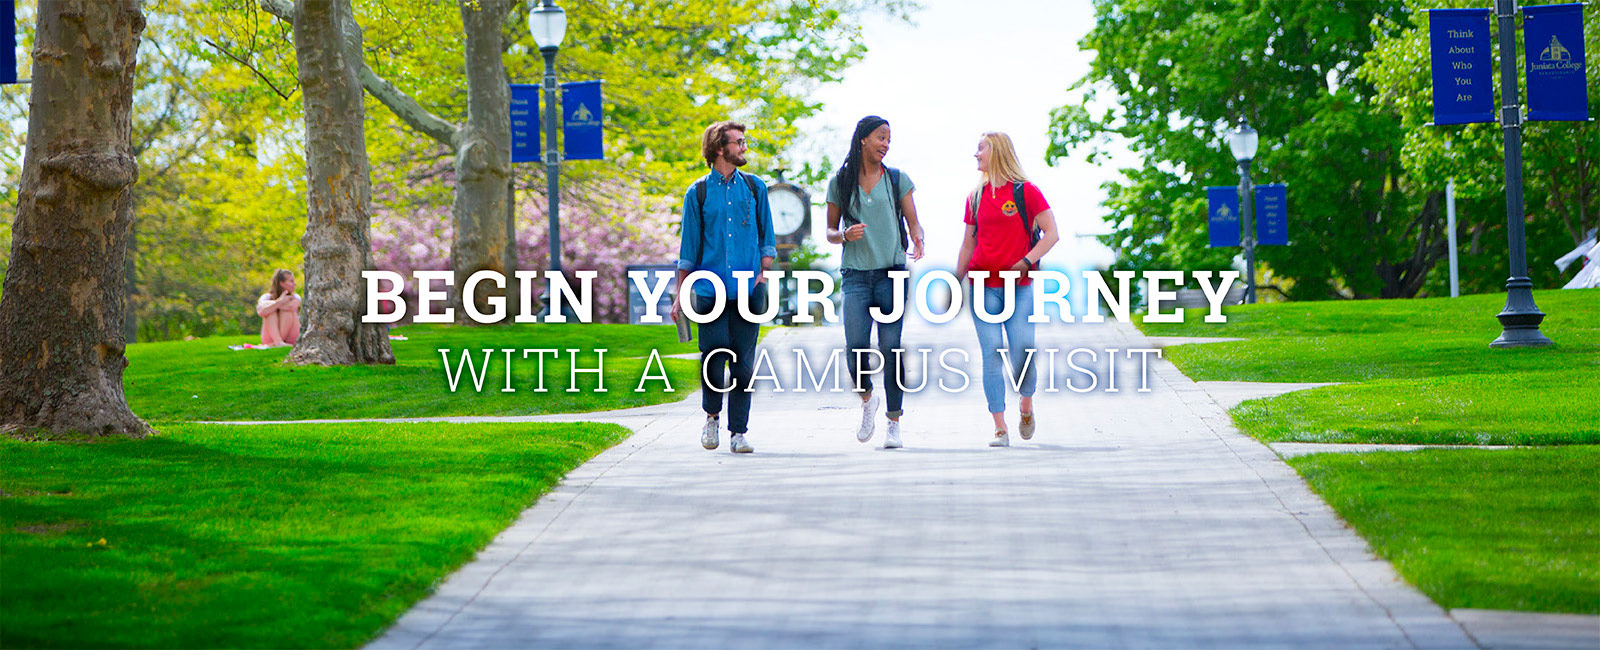 Visit Juniata College